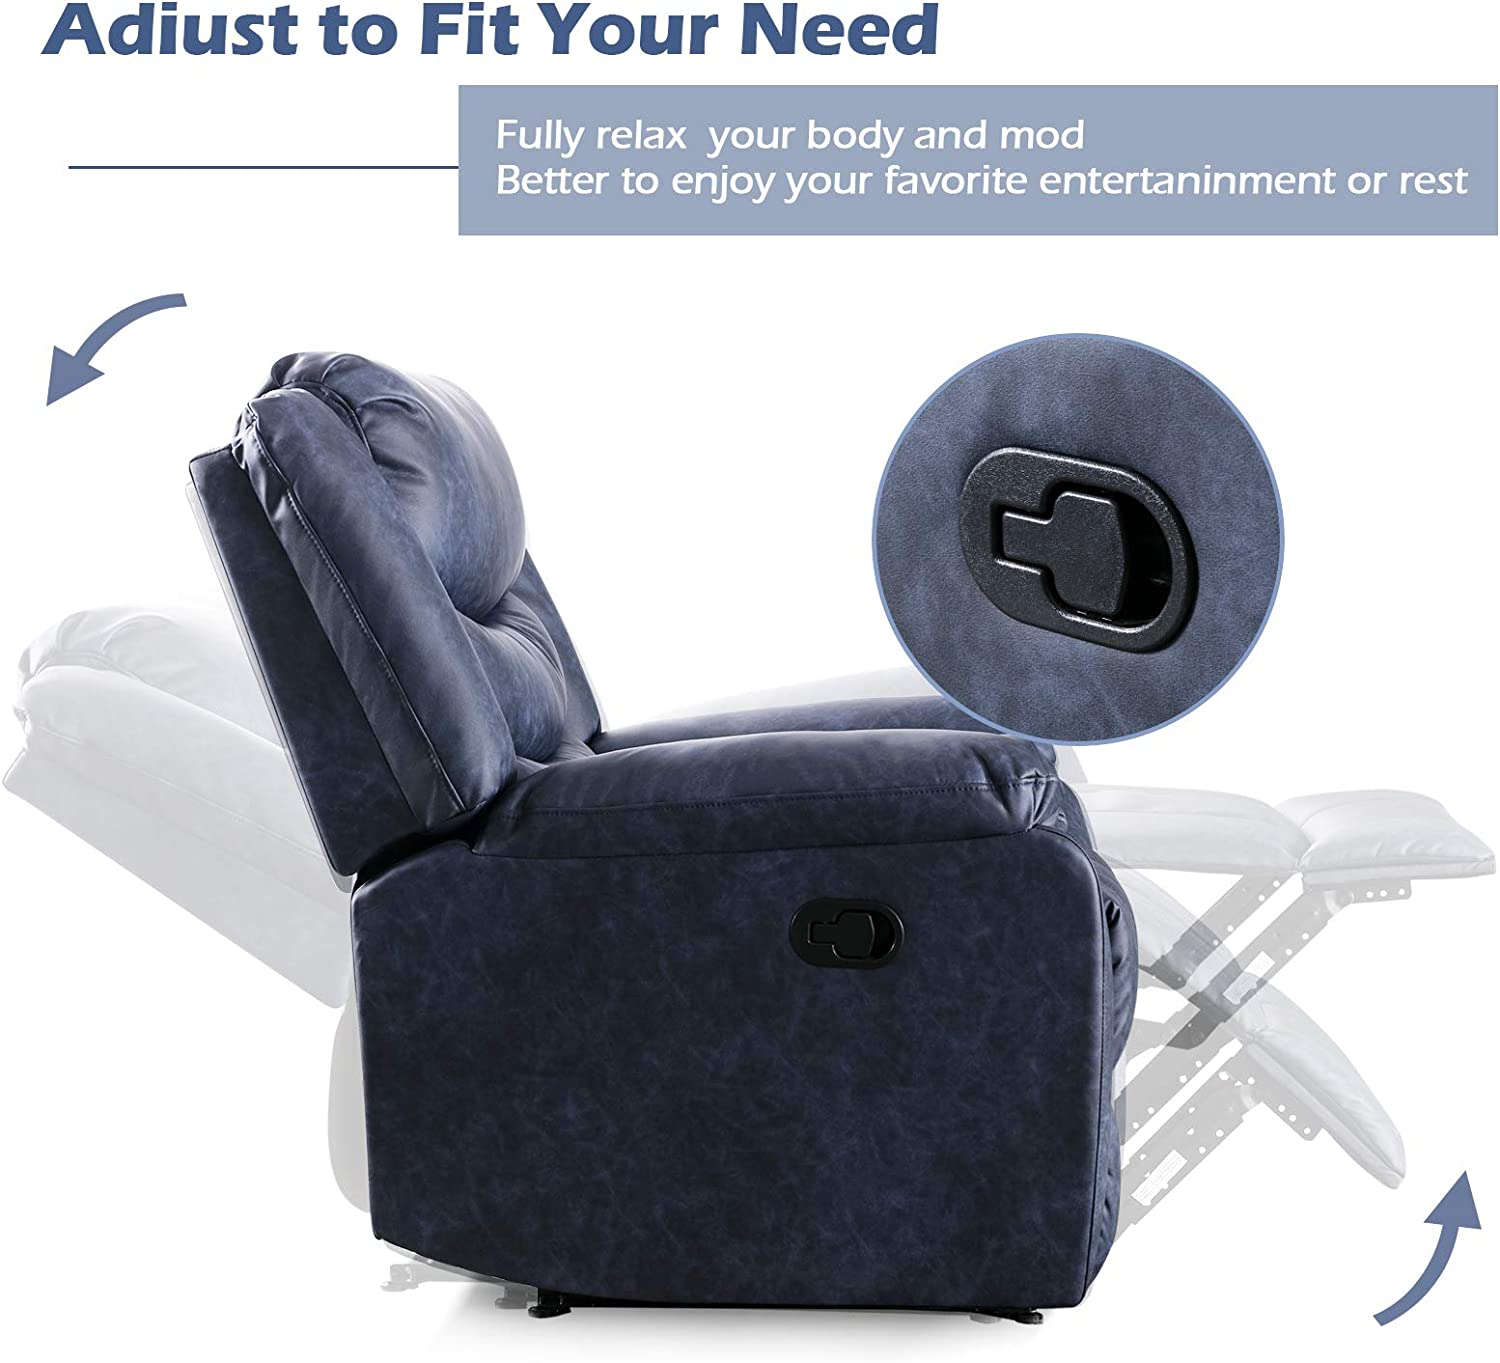 ANJ Recliner Chair with Overstuffed Arm and Back, Breathable Bonded Leather Classic Recliner Single Sofa Home Theater Seating (Navy)